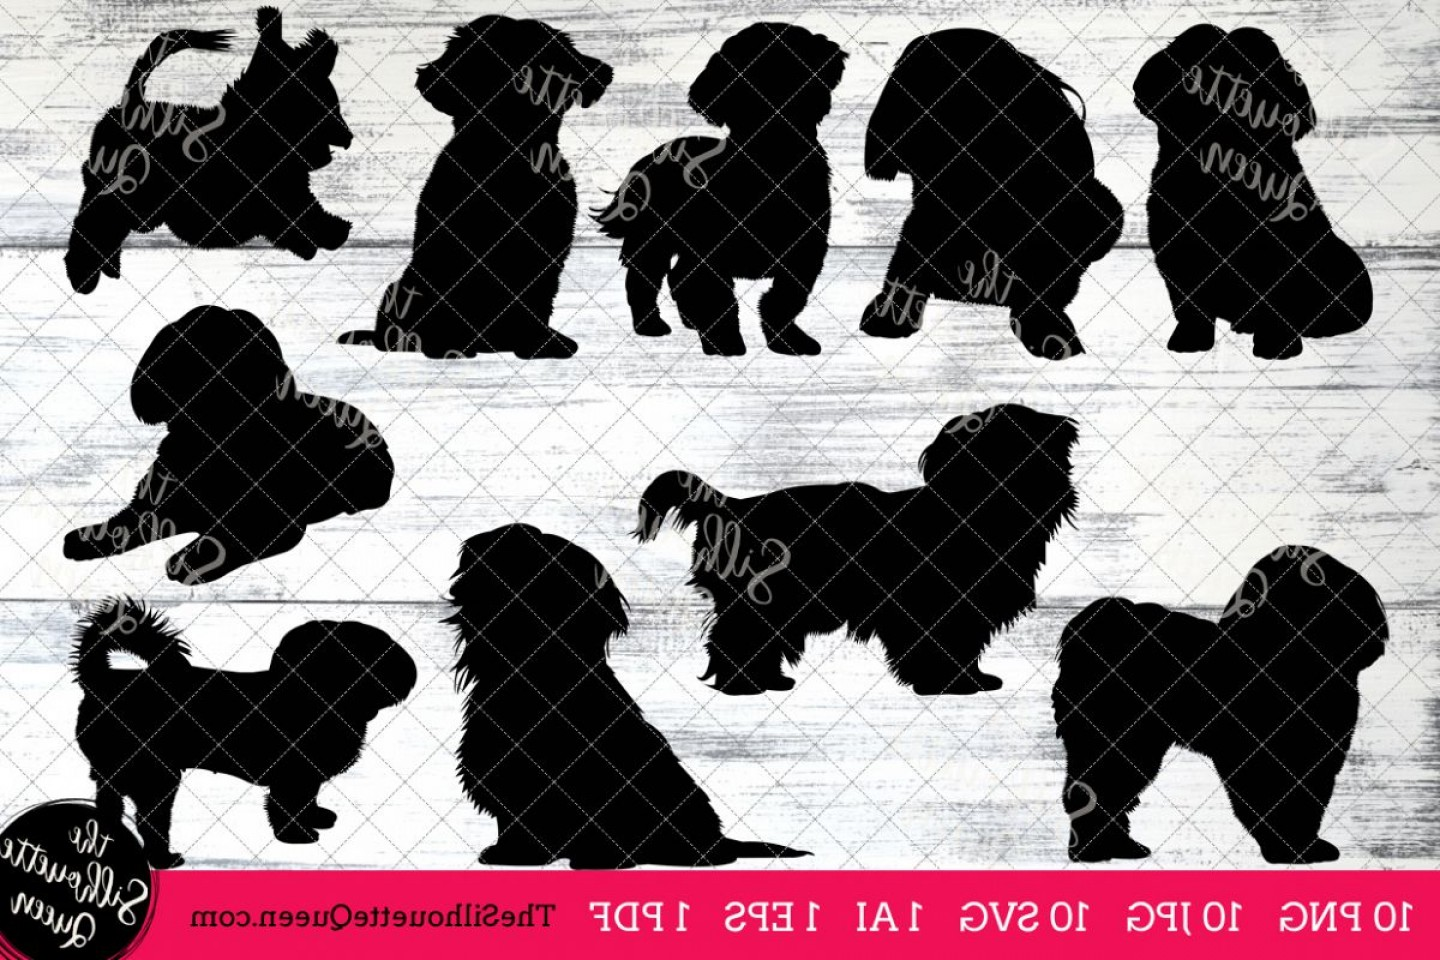 Shih Tzu Vector Siluete: Shih Tzu Dog Silhouette Clipart Clip Art Ai Eps Svgs Jpgs Pngs Pdf Shih Tzu Clipart Vectors Commercial And Personal Use